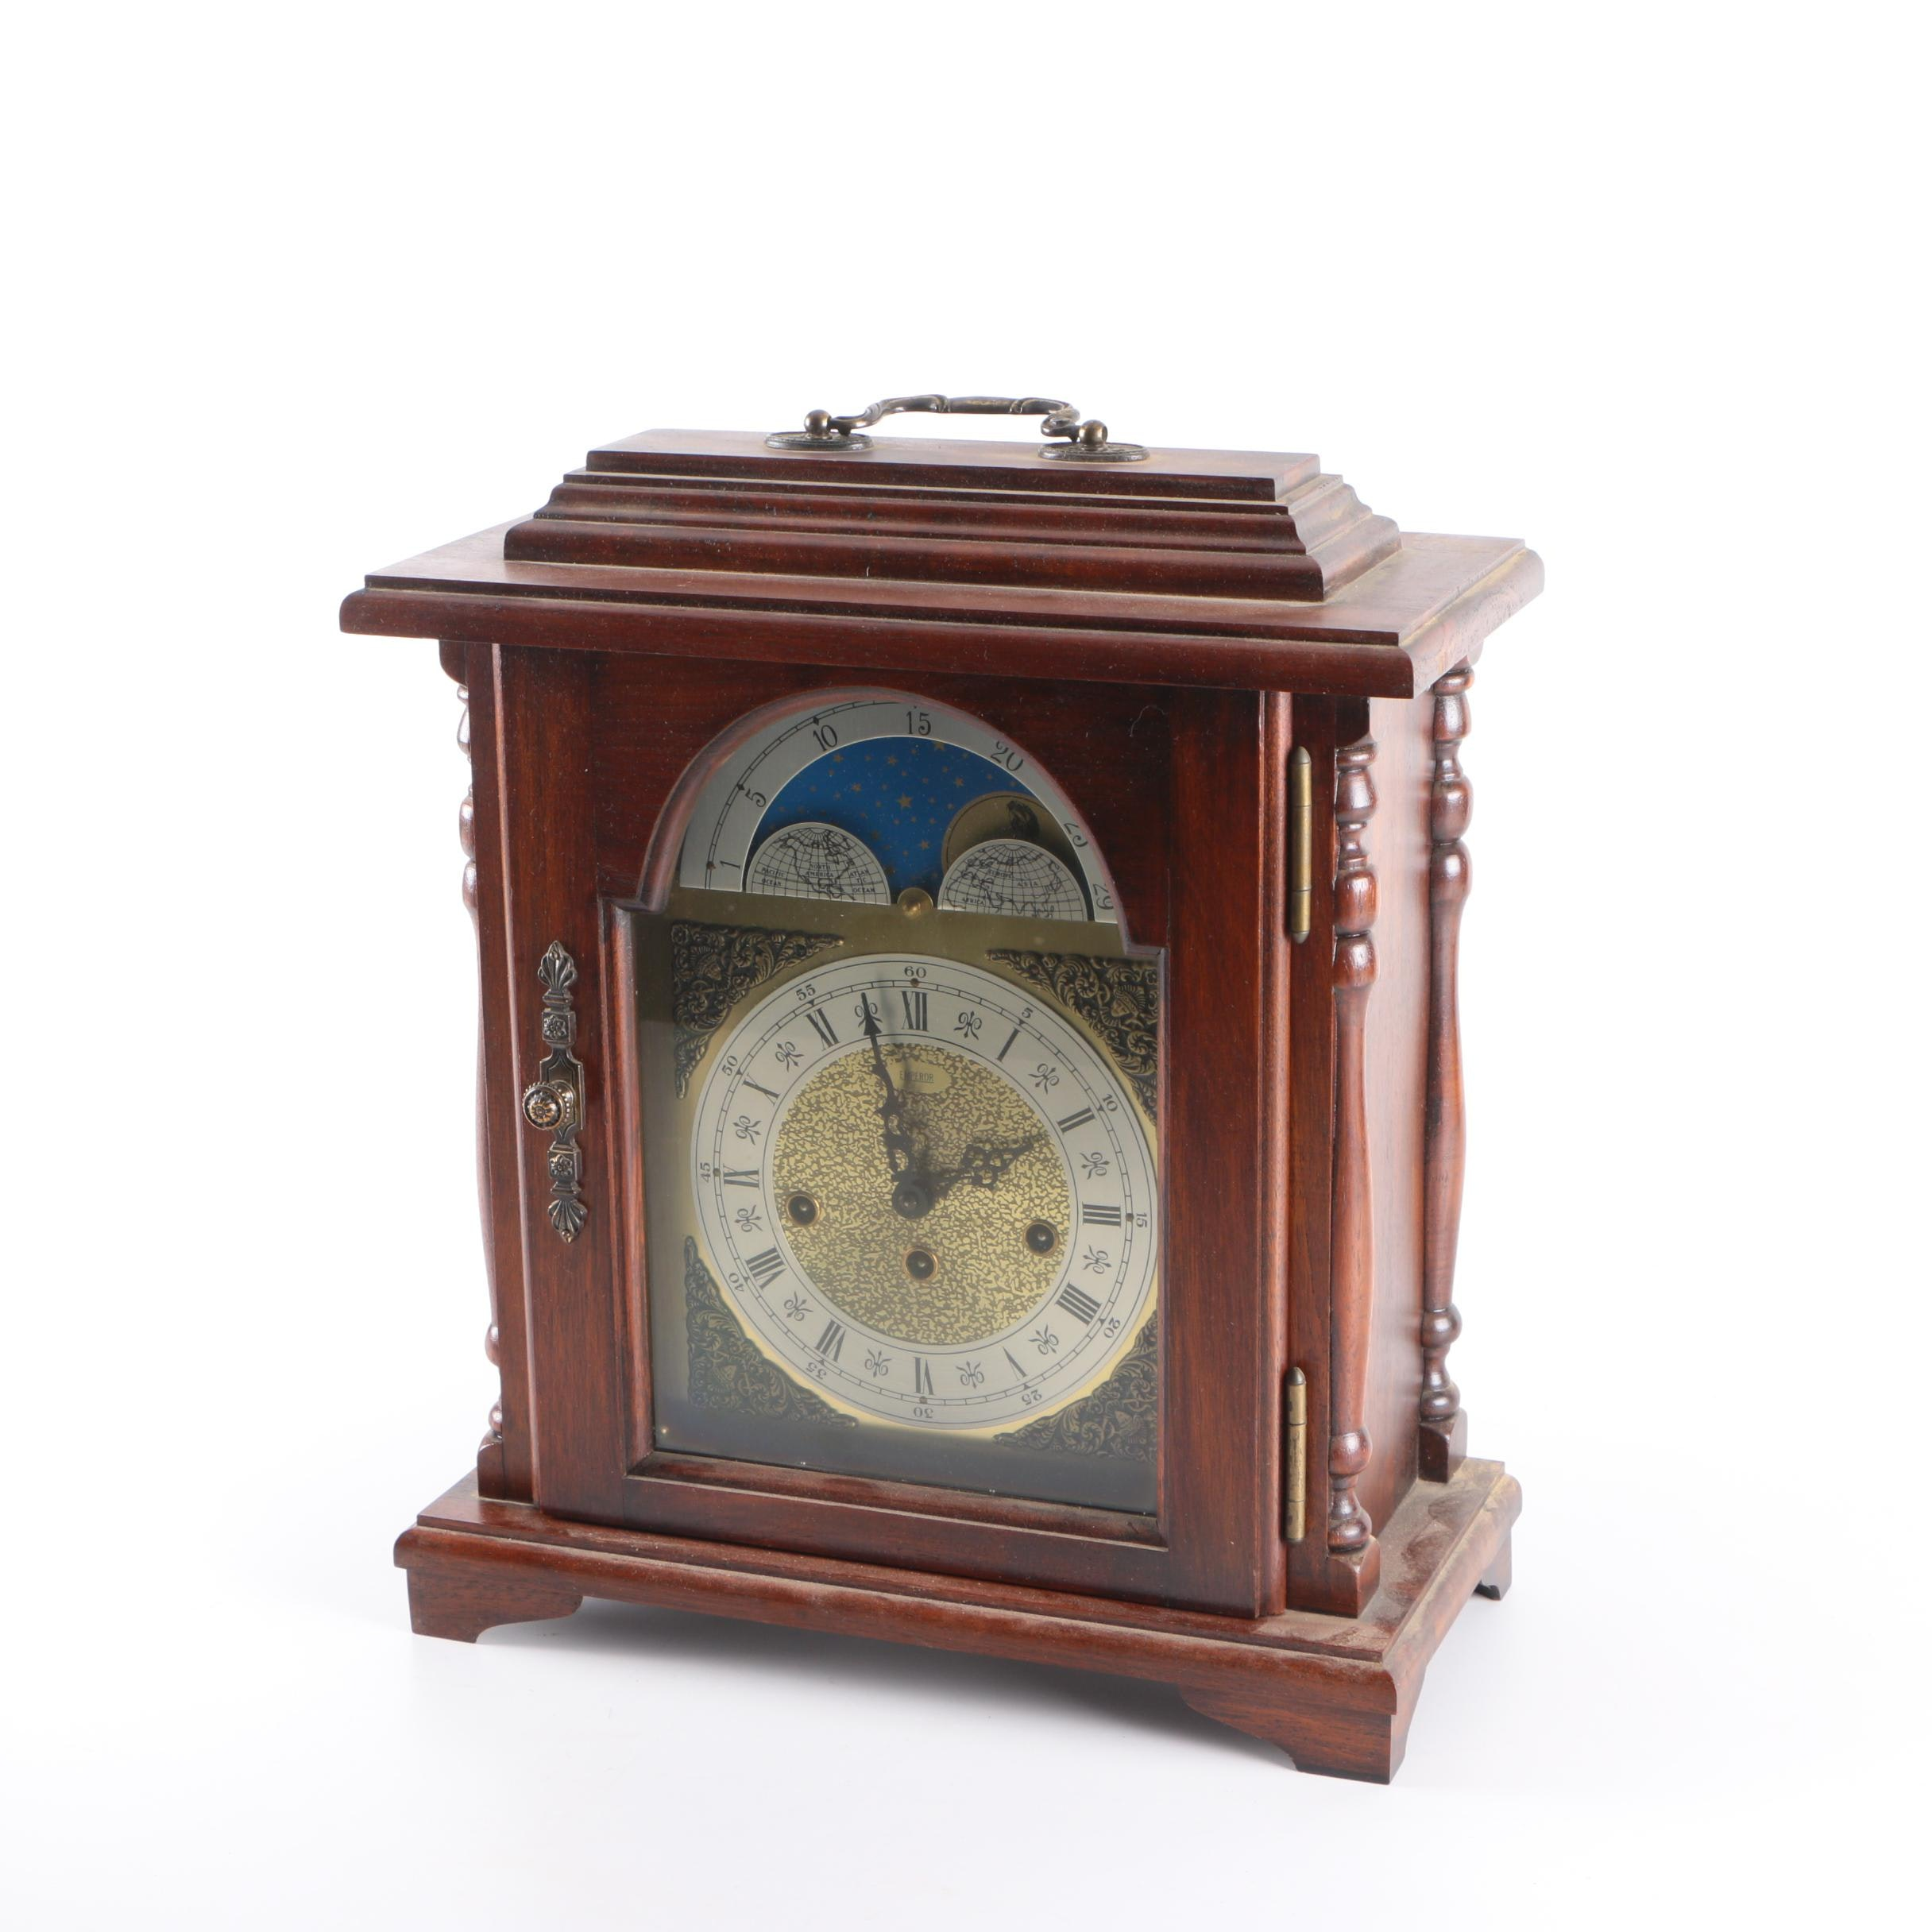 Emperor Mantel Clock with Moon Phase Dial